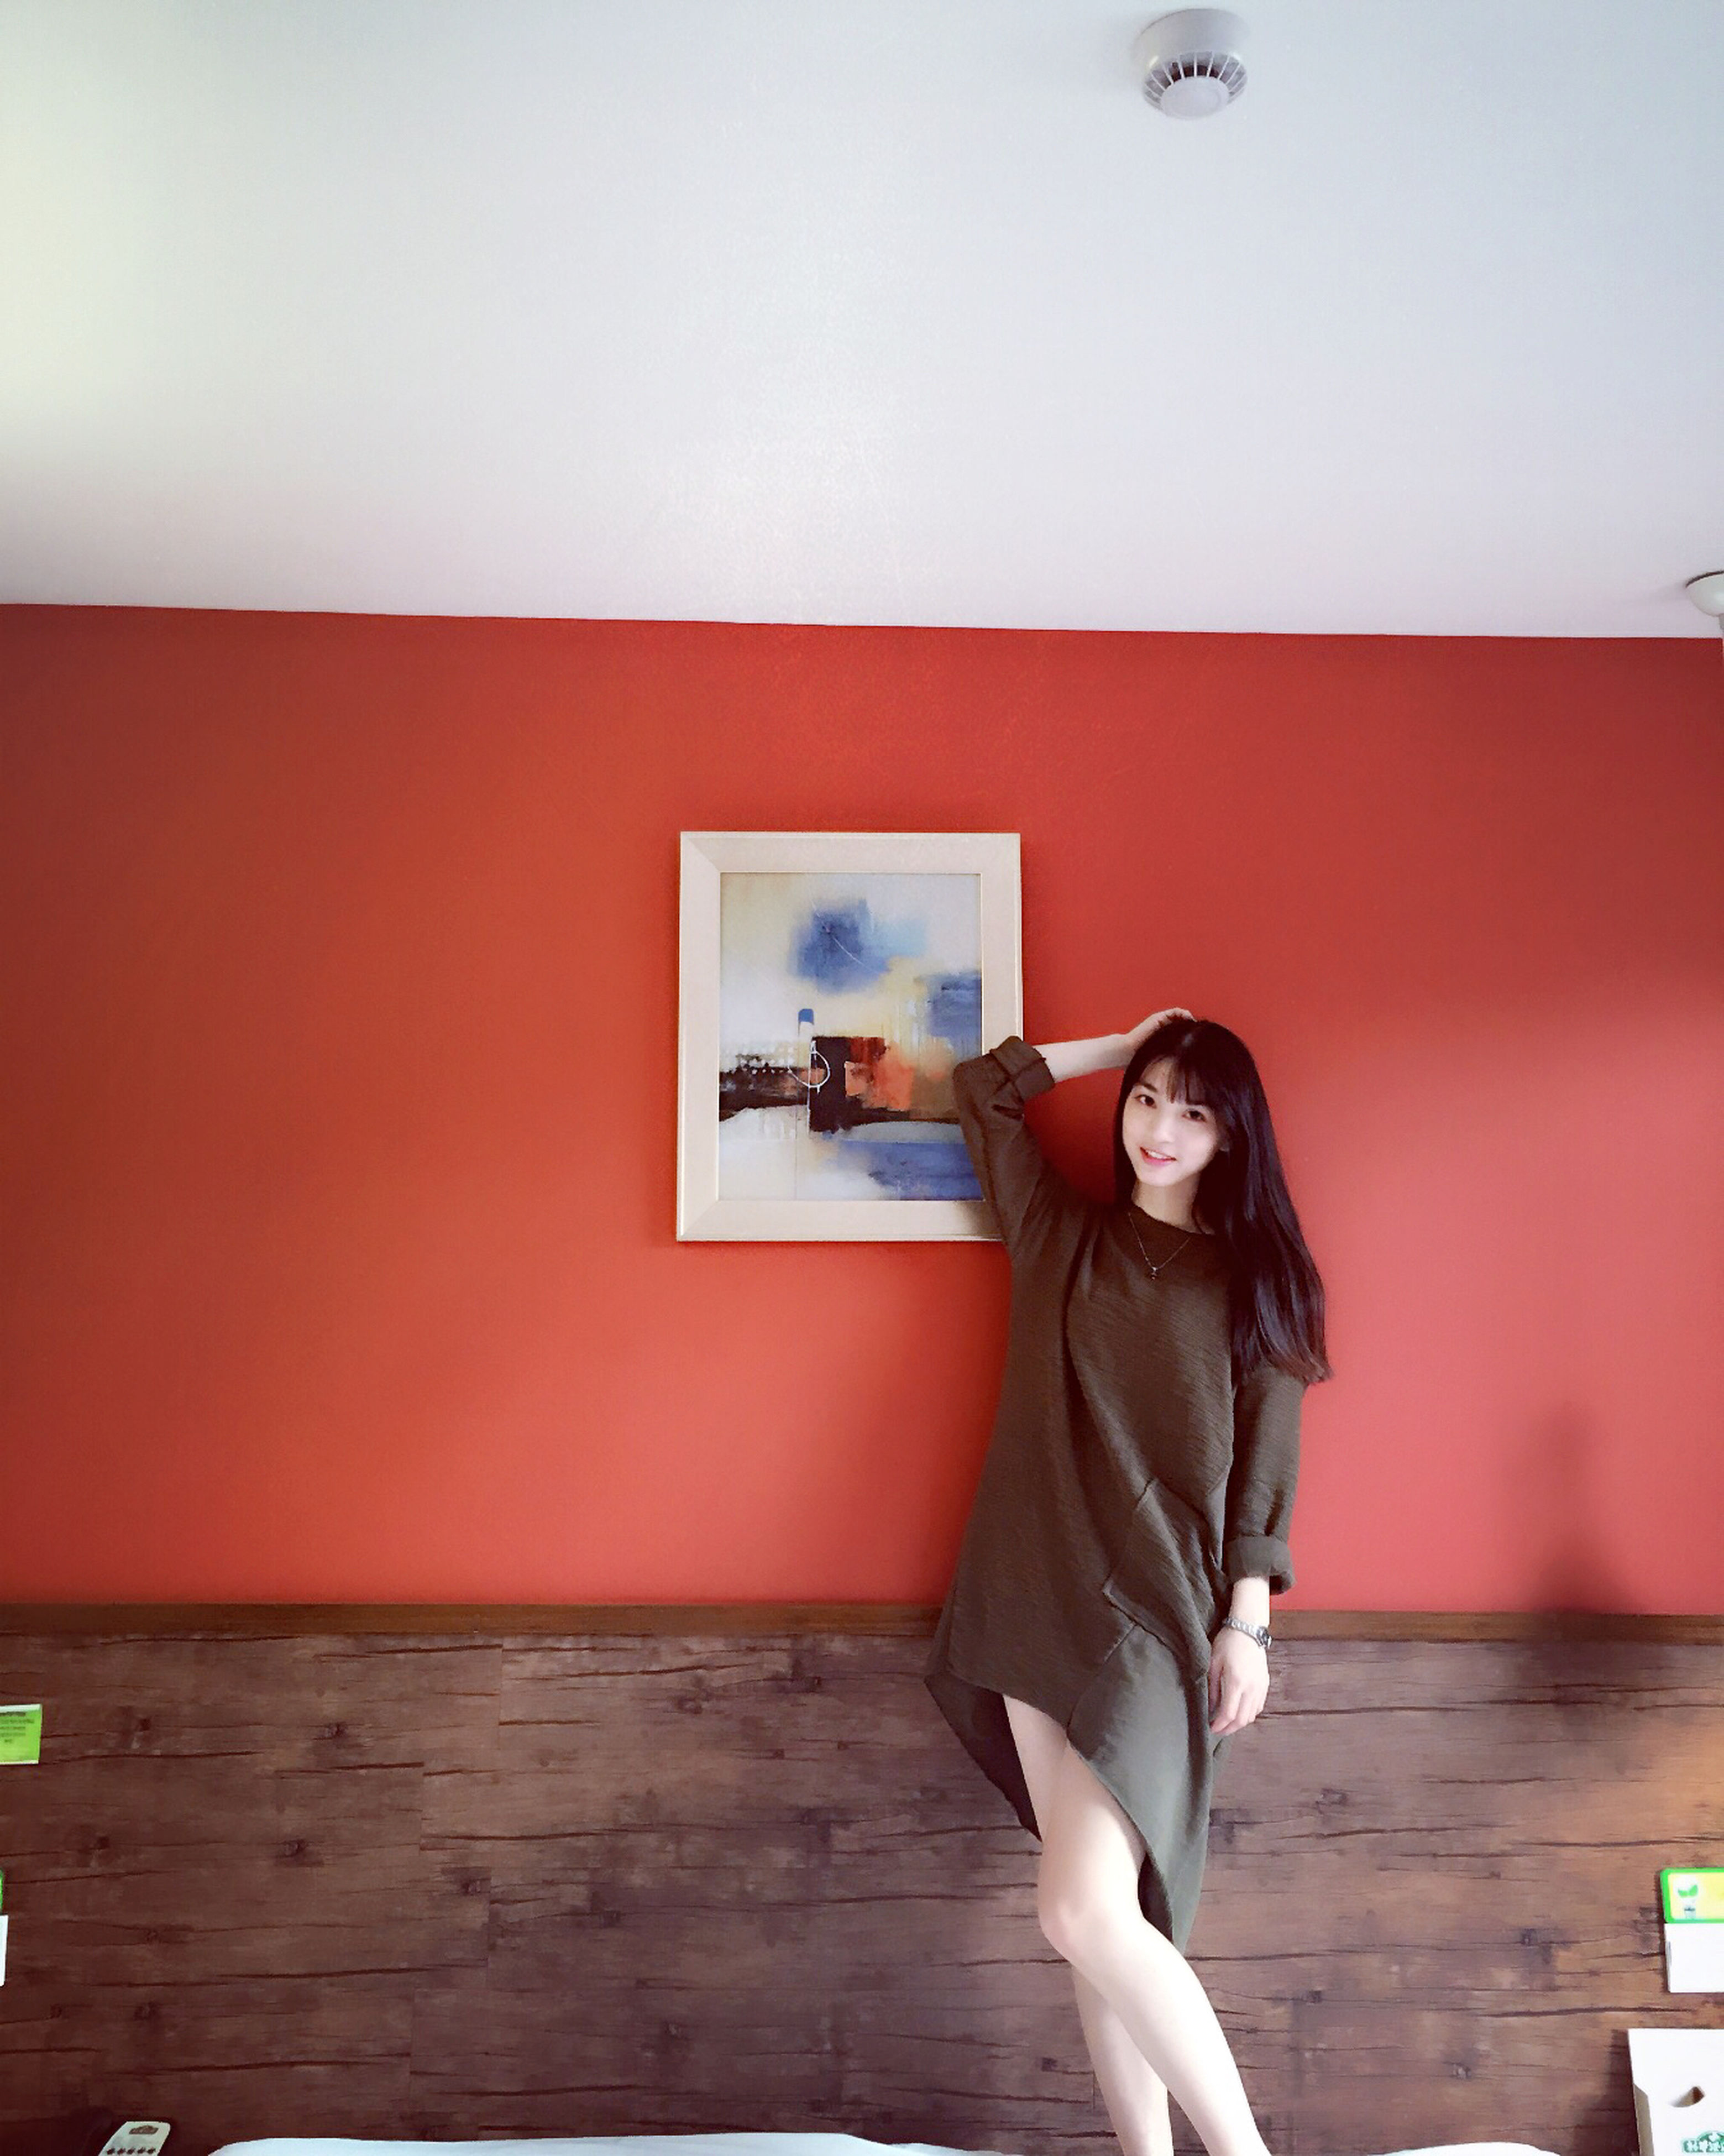 full length, casual clothing, lifestyles, indoors, wood - material, wall - building feature, standing, sitting, copy space, leisure activity, red, wall, young adult, built structure, door, rear view, holding, side view